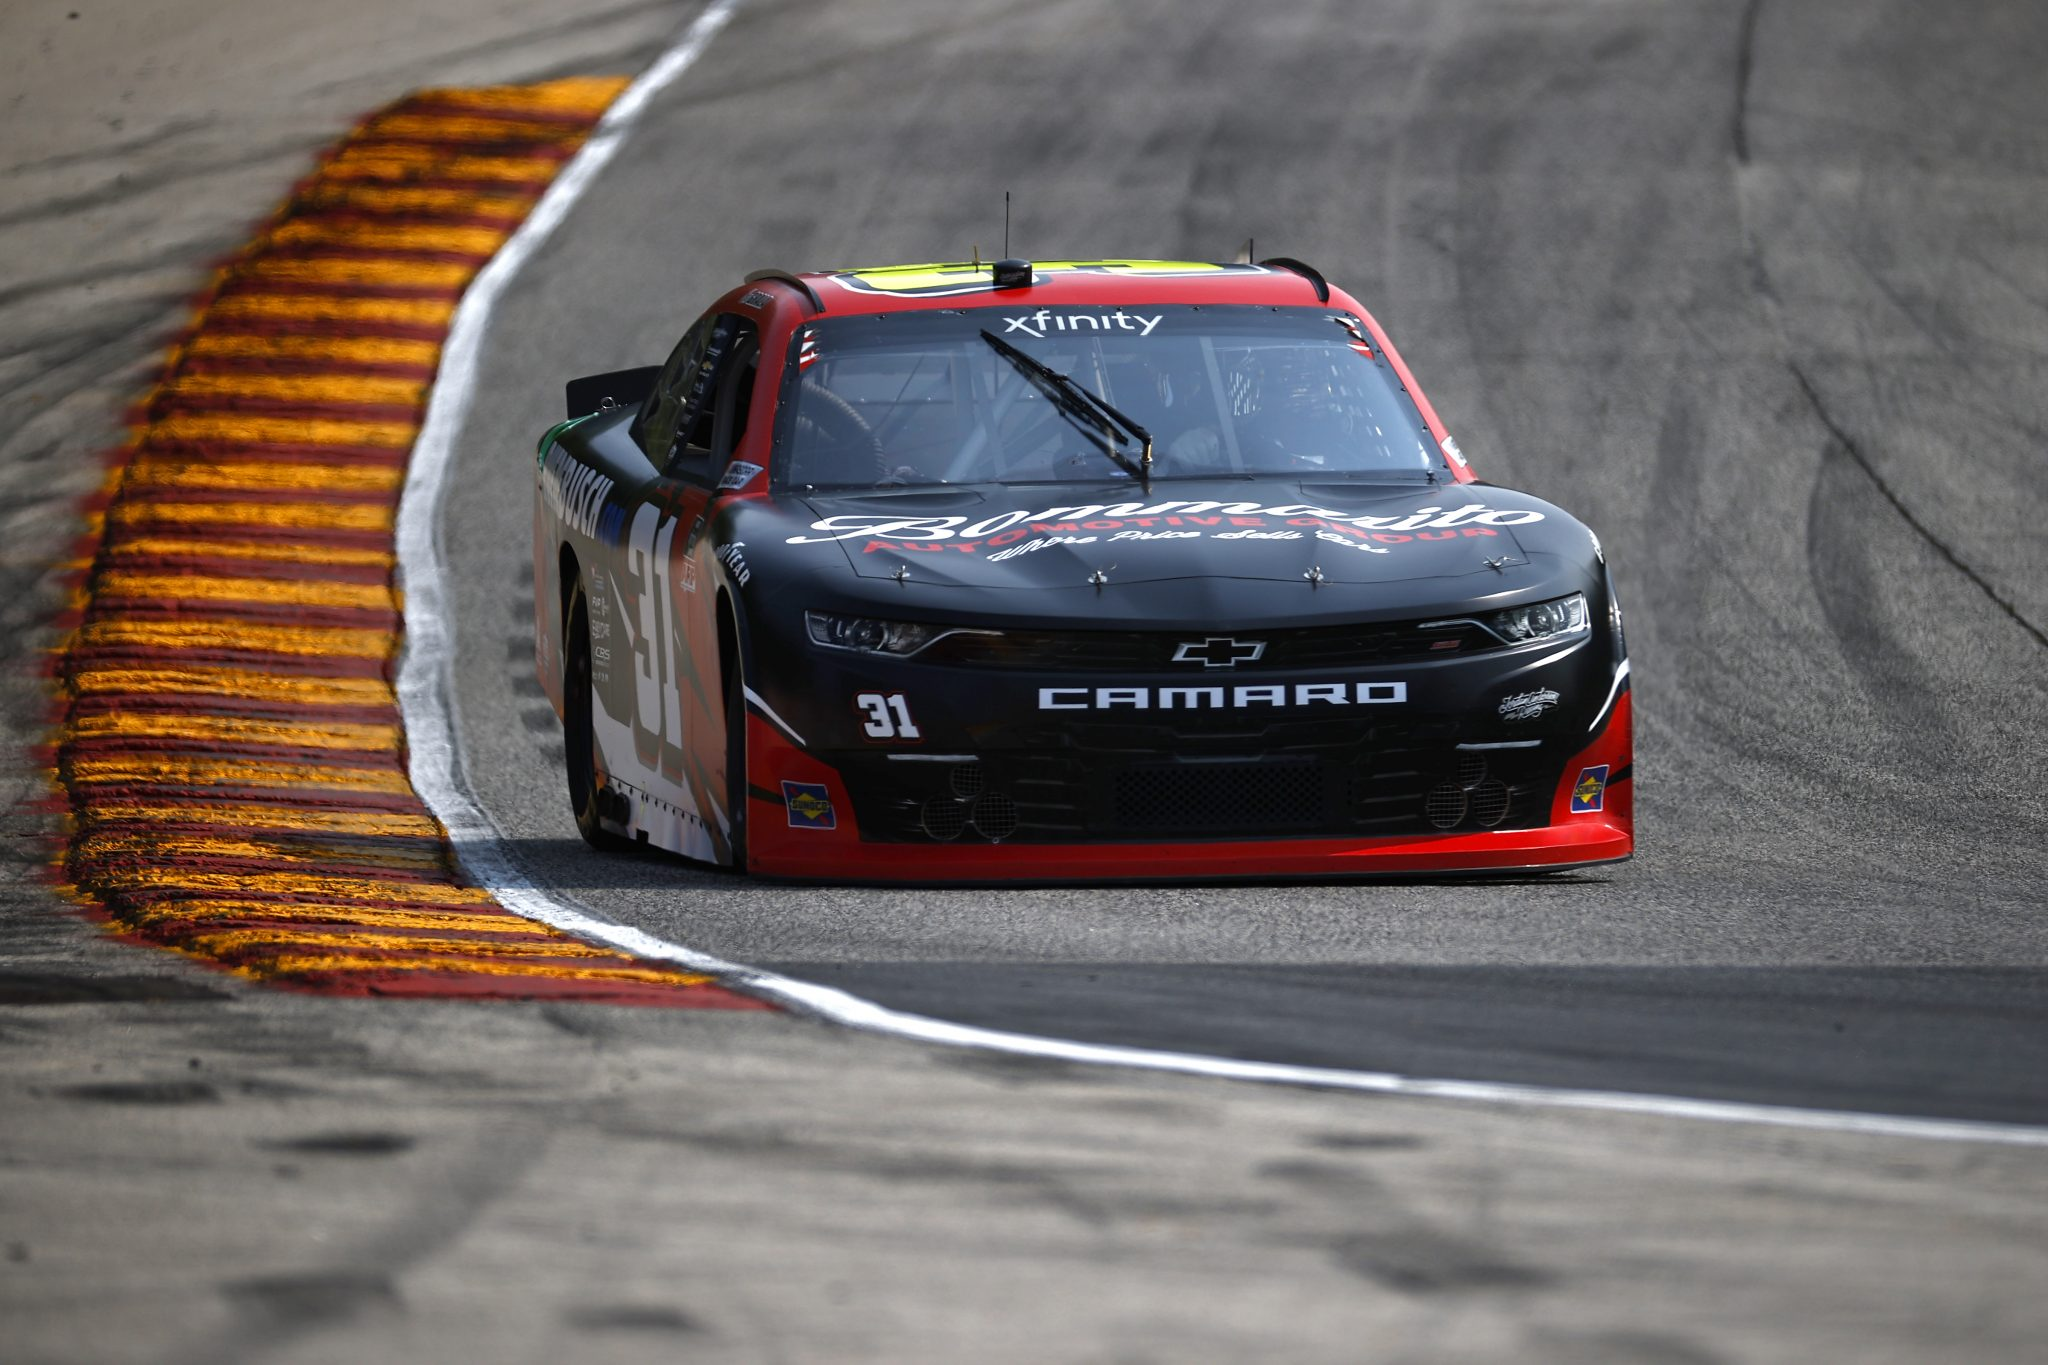 ELKHART LAKE, WISCONSIN - JULY 02: Kaz Grala, driver of the #31 Ruedebusch.com Chevrolet, drives during practice for the NASCAR Xfinity Series Henry 180 at Road America on July 02, 2021 in Elkhart Lake, Wisconsin. (Photo by Jared C. Tilton/Getty Images) | Getty Images